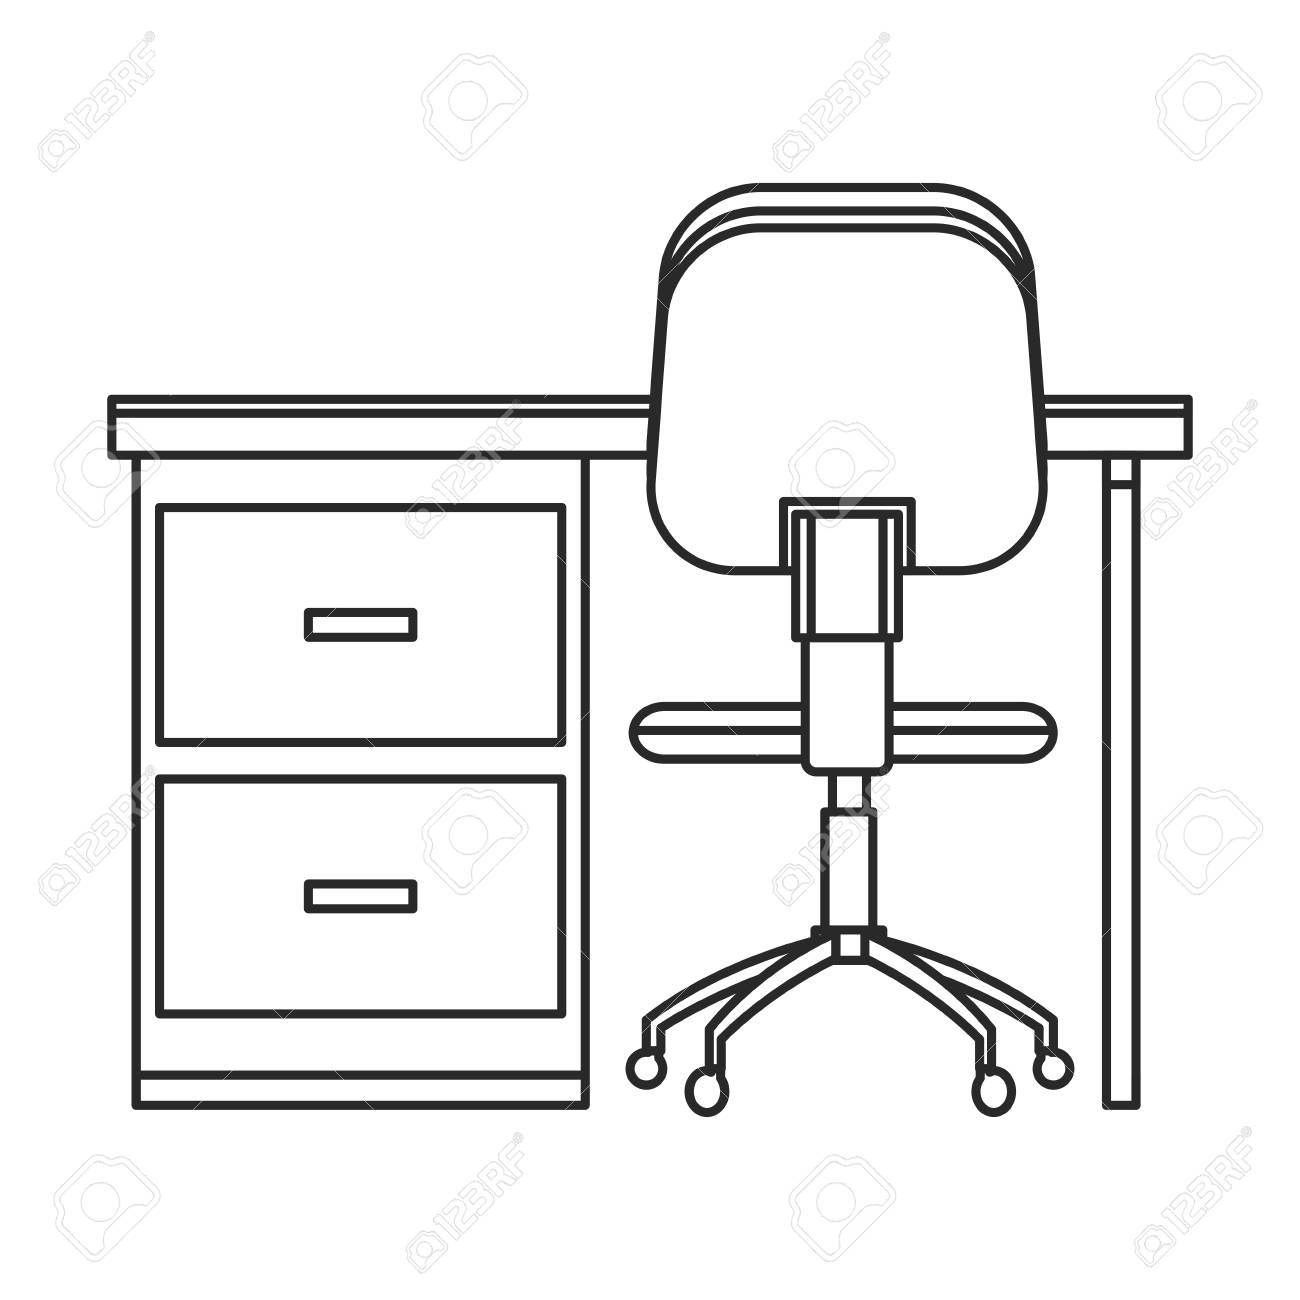 Outstanding Desk Chair Workplace Image Outline Vector Illustration Eps 10 Onthecornerstone Fun Painted Chair Ideas Images Onthecornerstoneorg